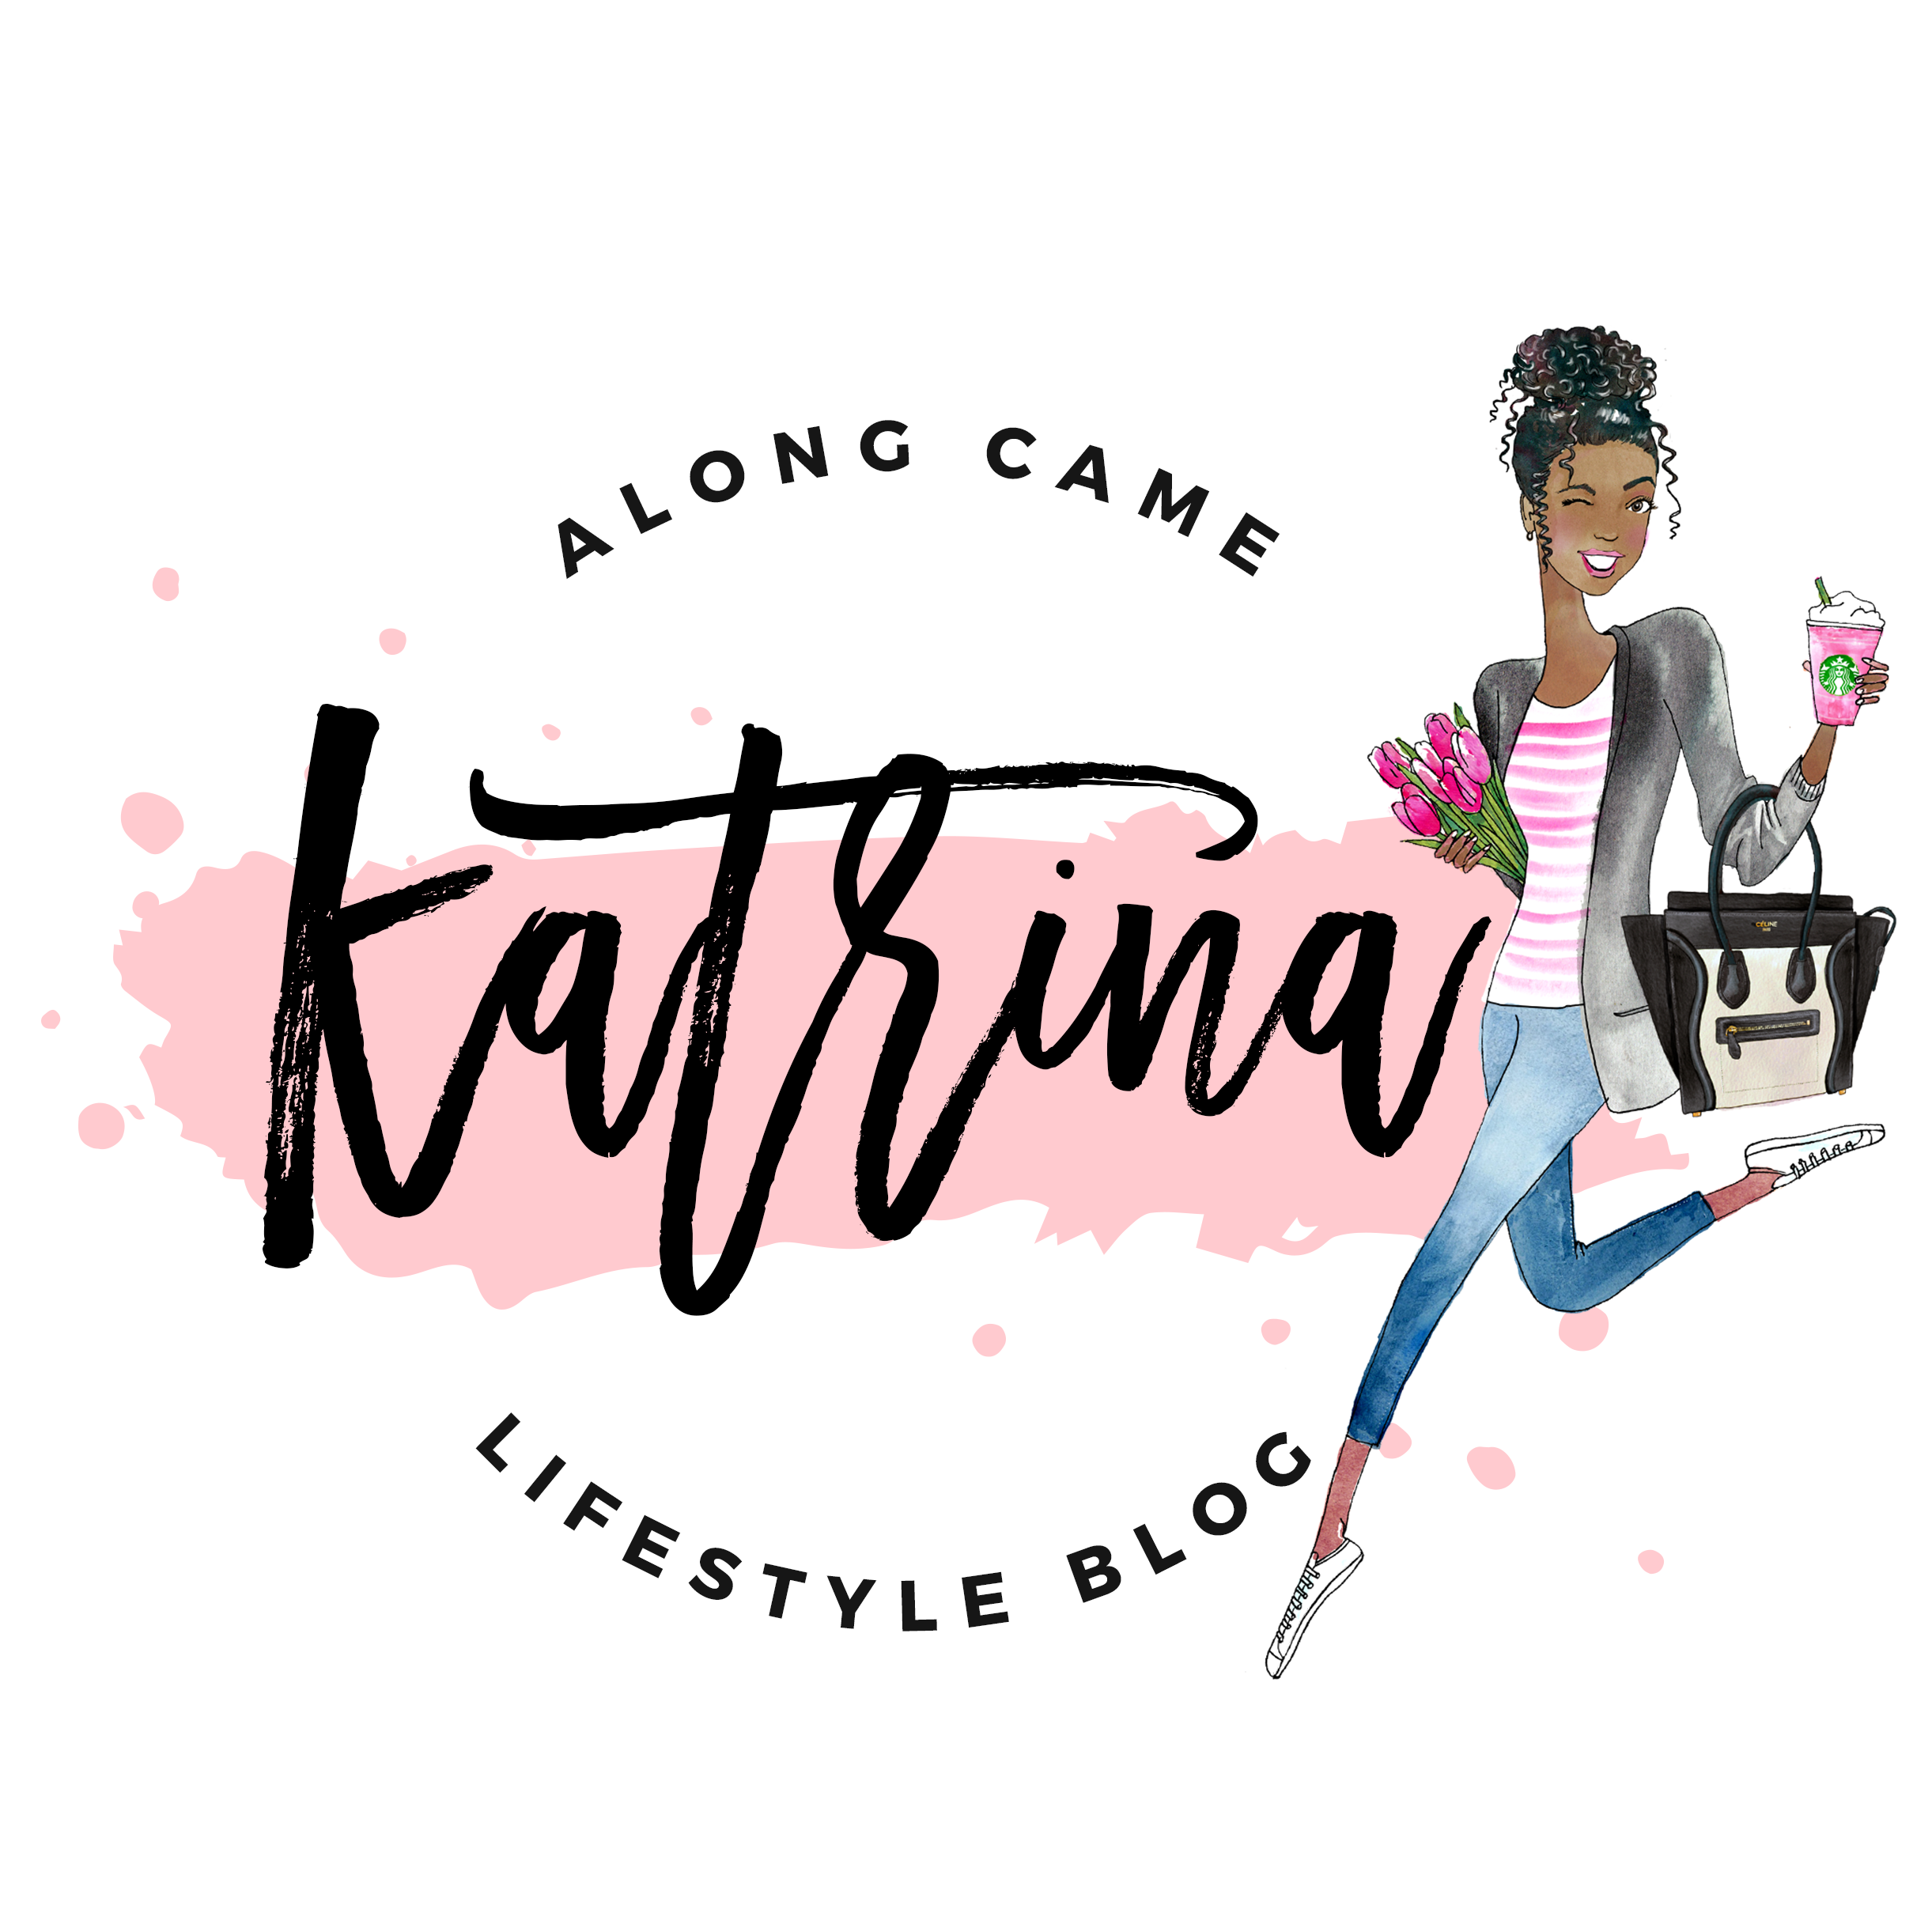 Along Came Katrina